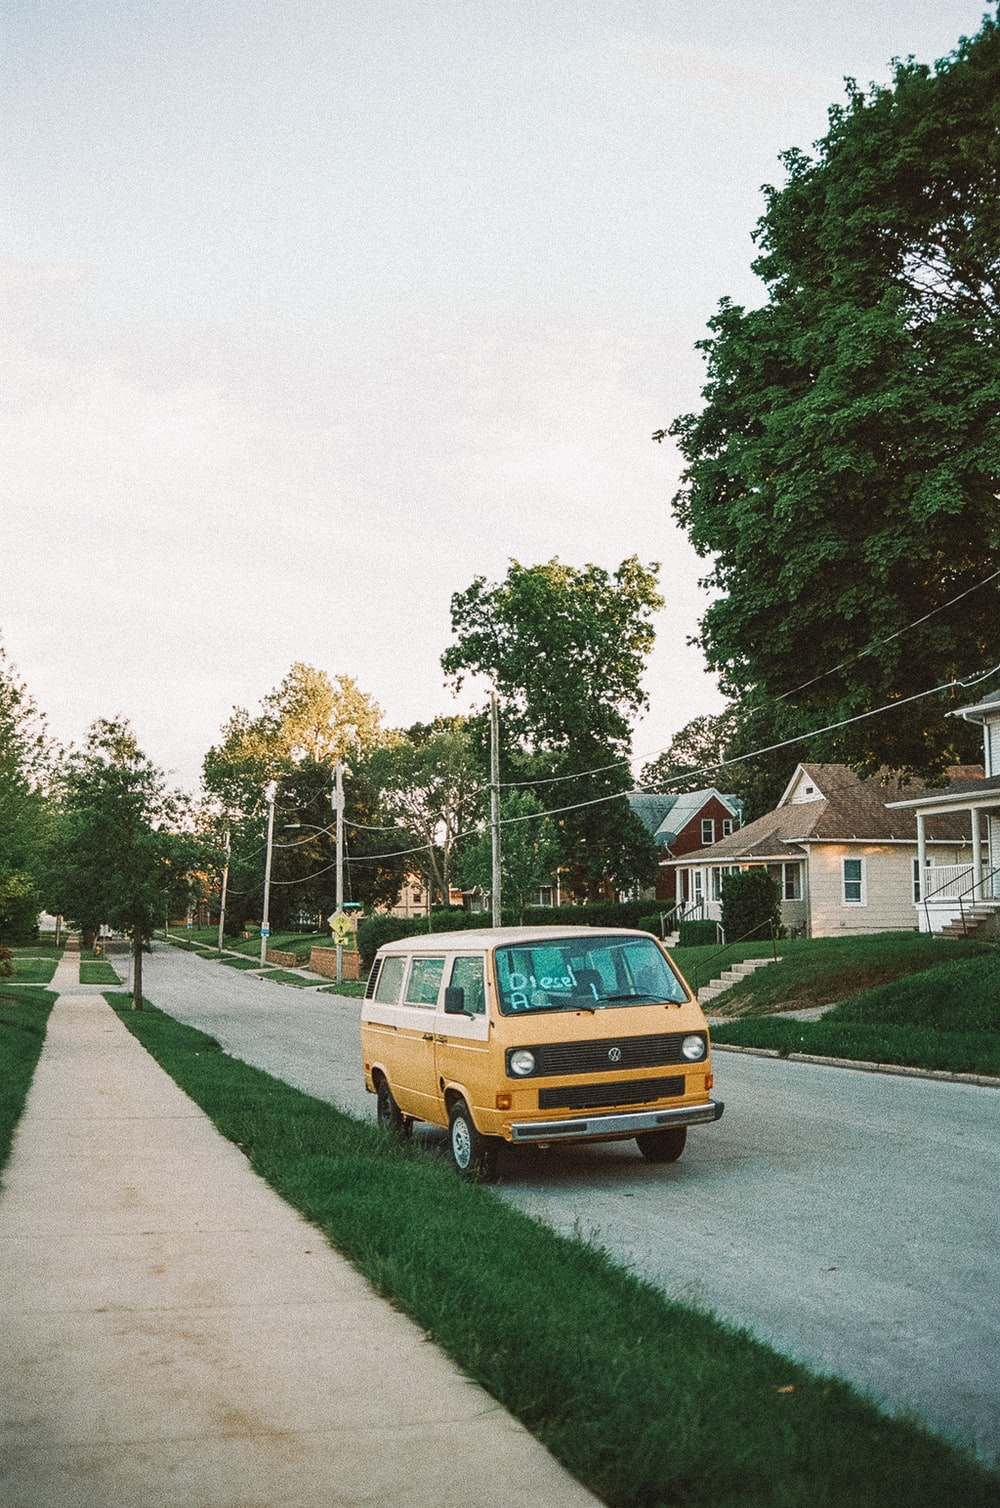 yellow van parked on green grass field near houses and trees during daytime